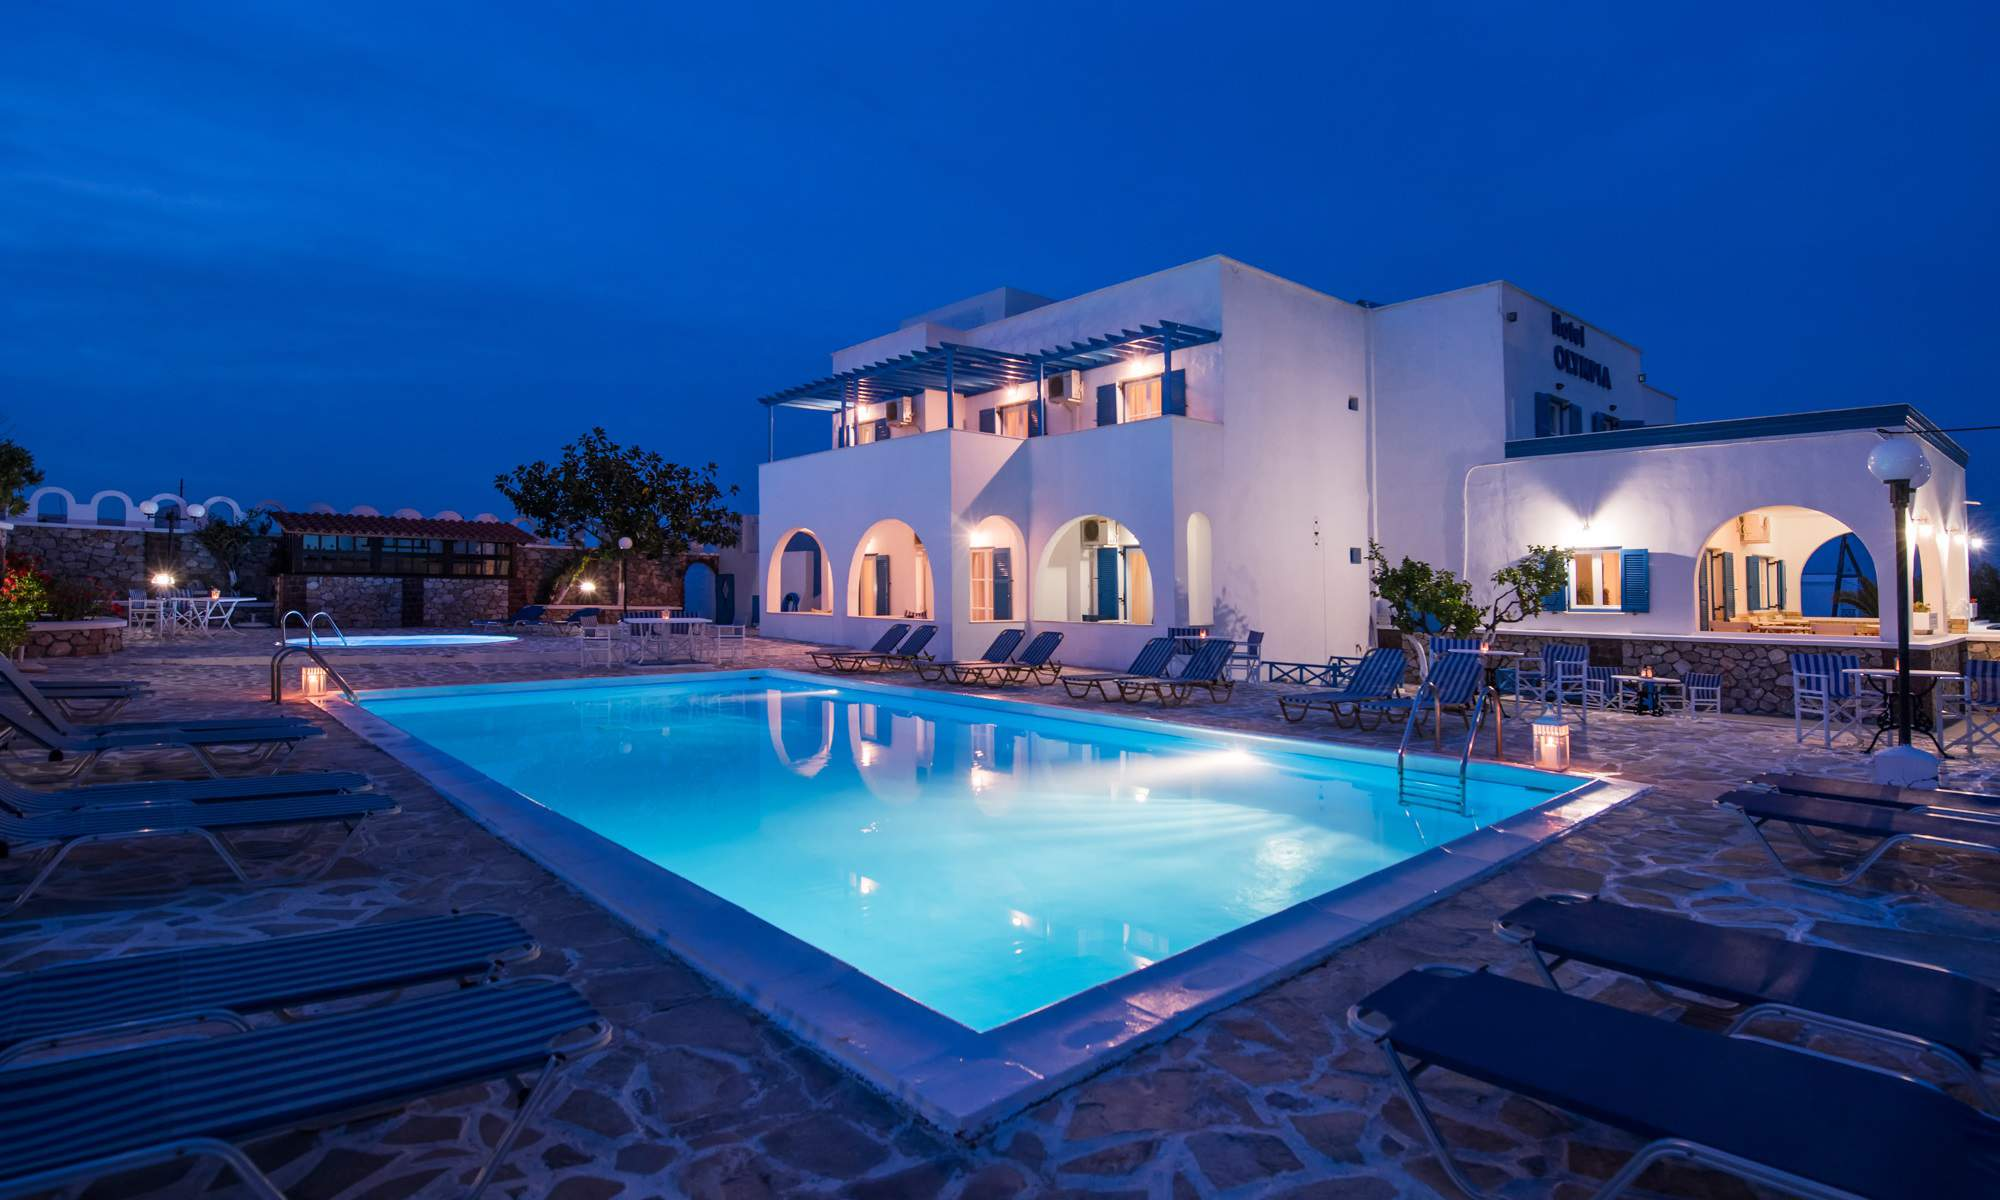 Hotel Olympia Offers A Traditional Cycladic Setting Conveniently Located In Quiet And Peaceful Neighborhood Yet Only Few Minutes Walk 600 Meter From